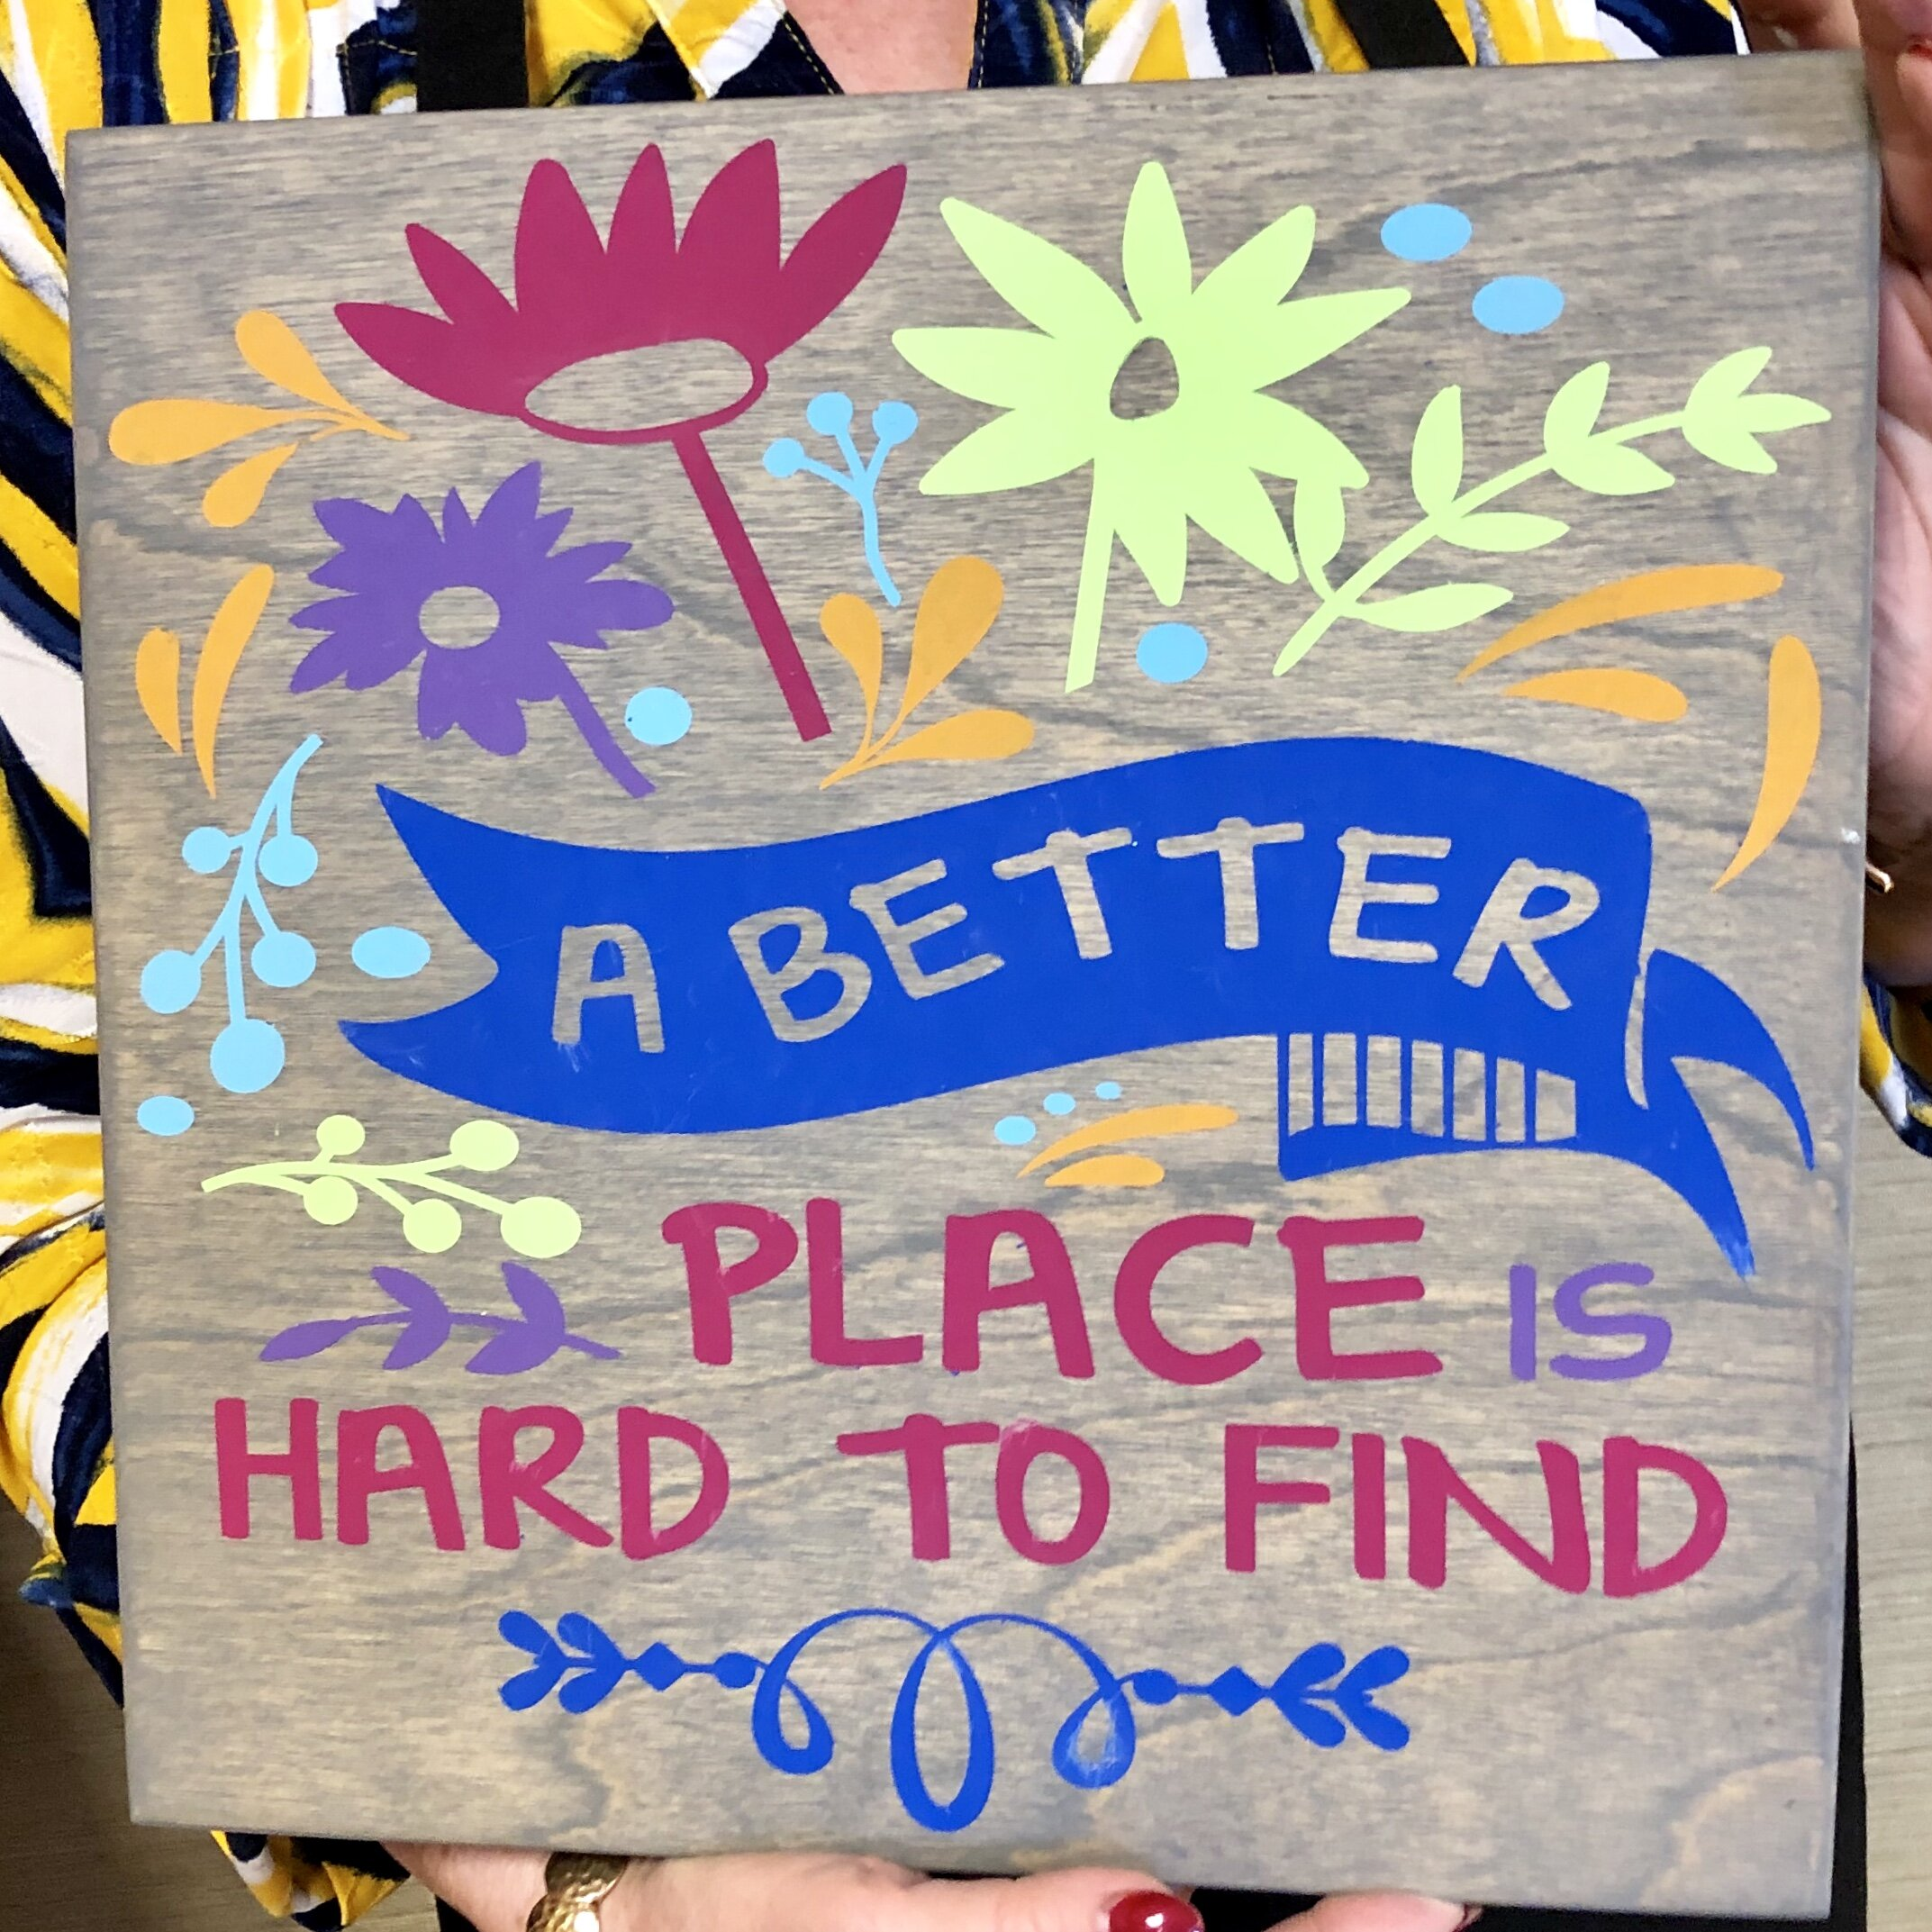 A Better Place Is Hard To Find.jpg